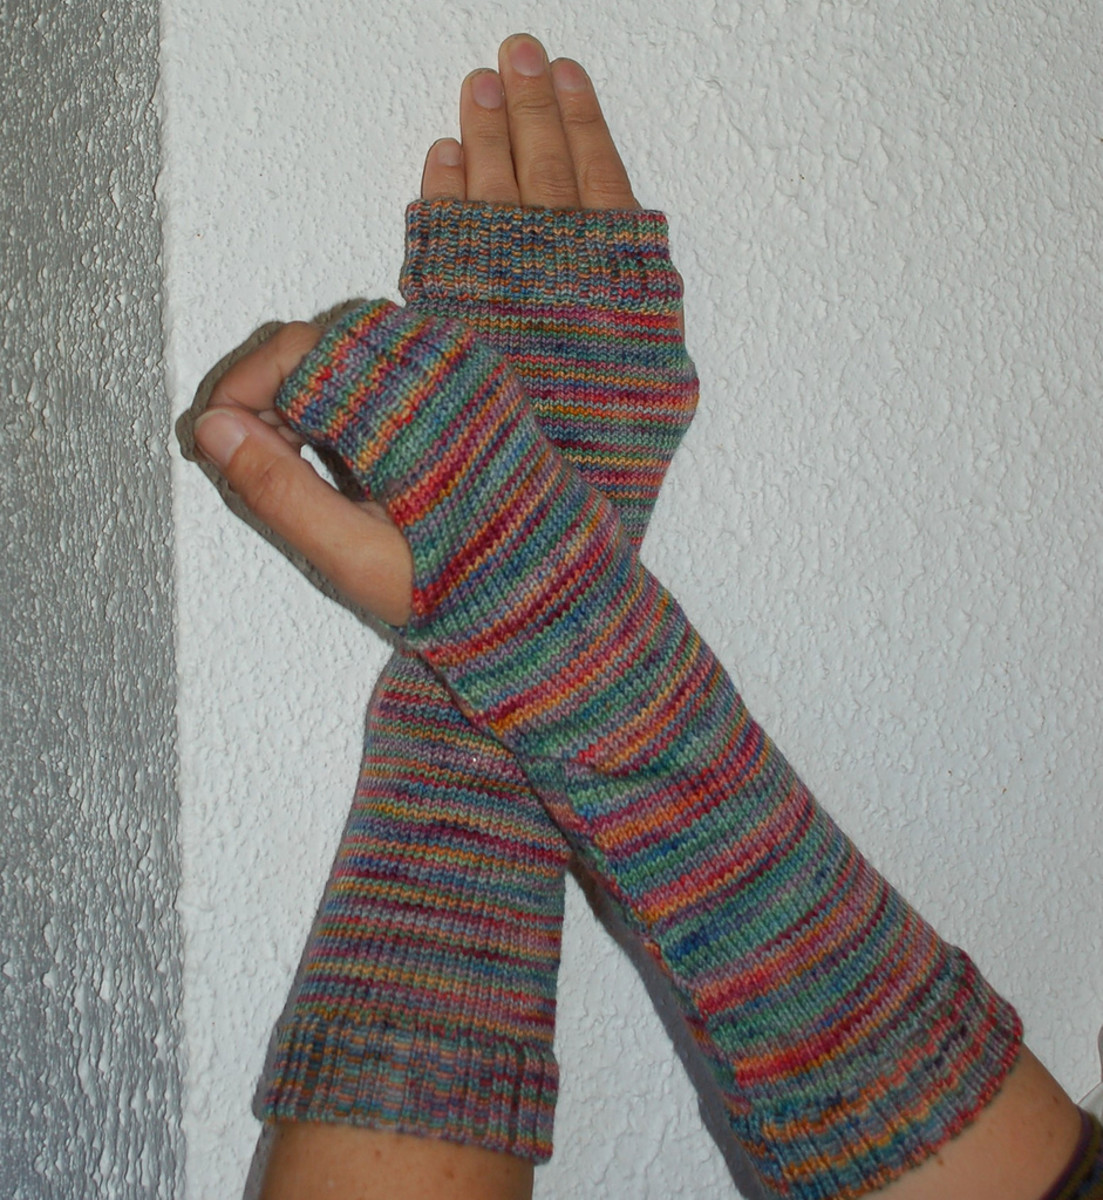 Arm warmers with fingerless gloves.